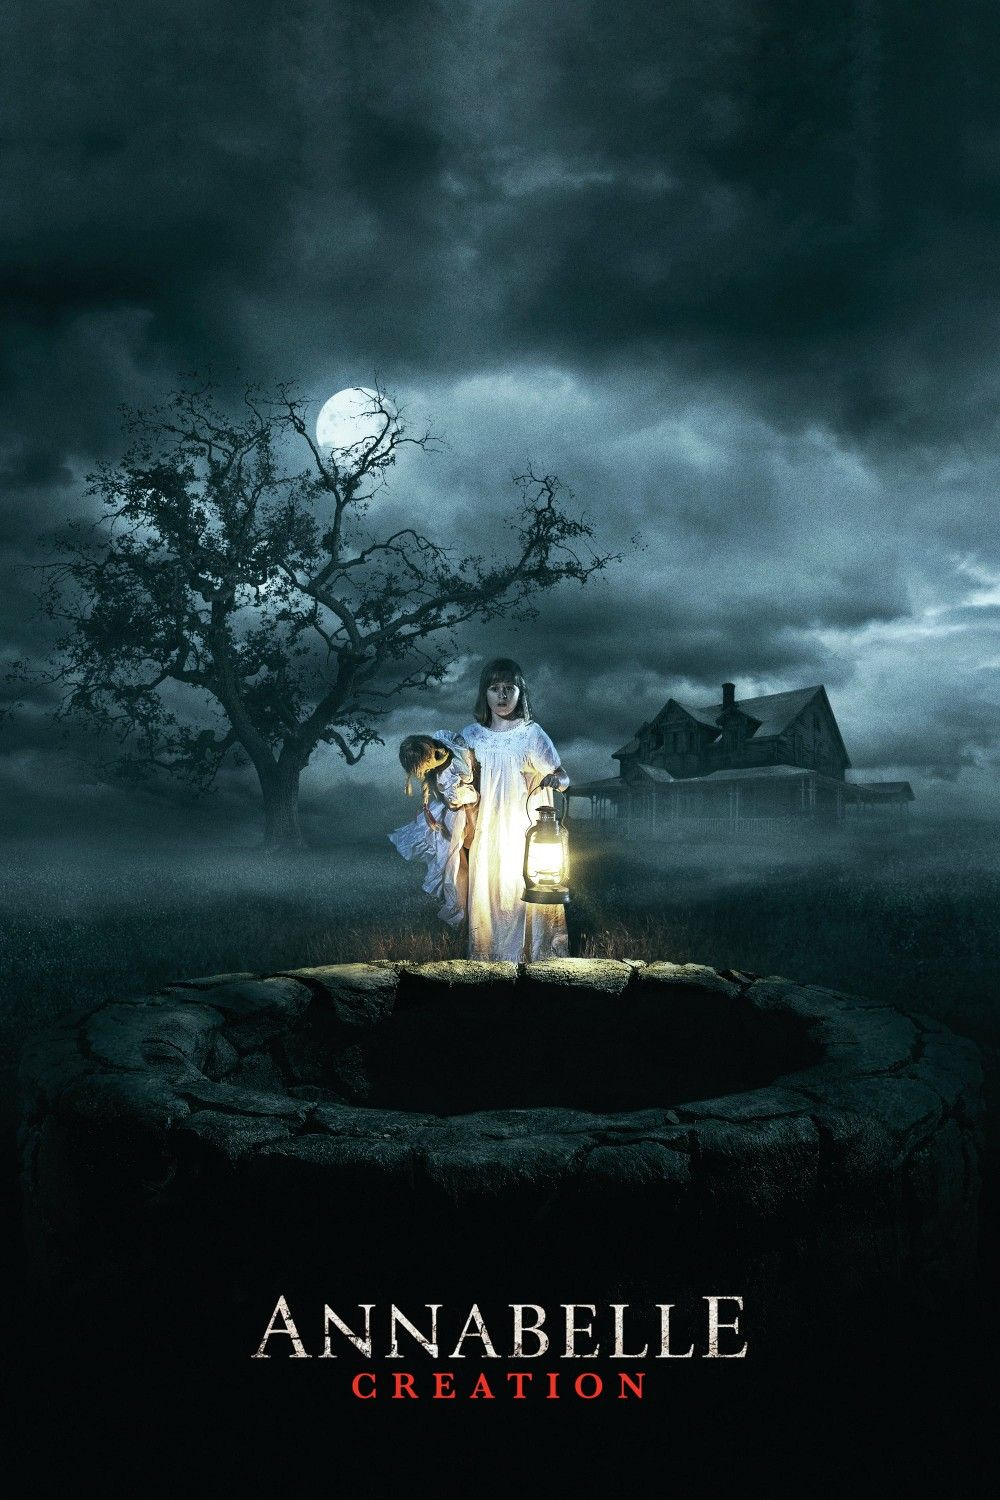 Pin By Renne Correa On Peliculas Annabelle Creation Creation Movie The Conjuring